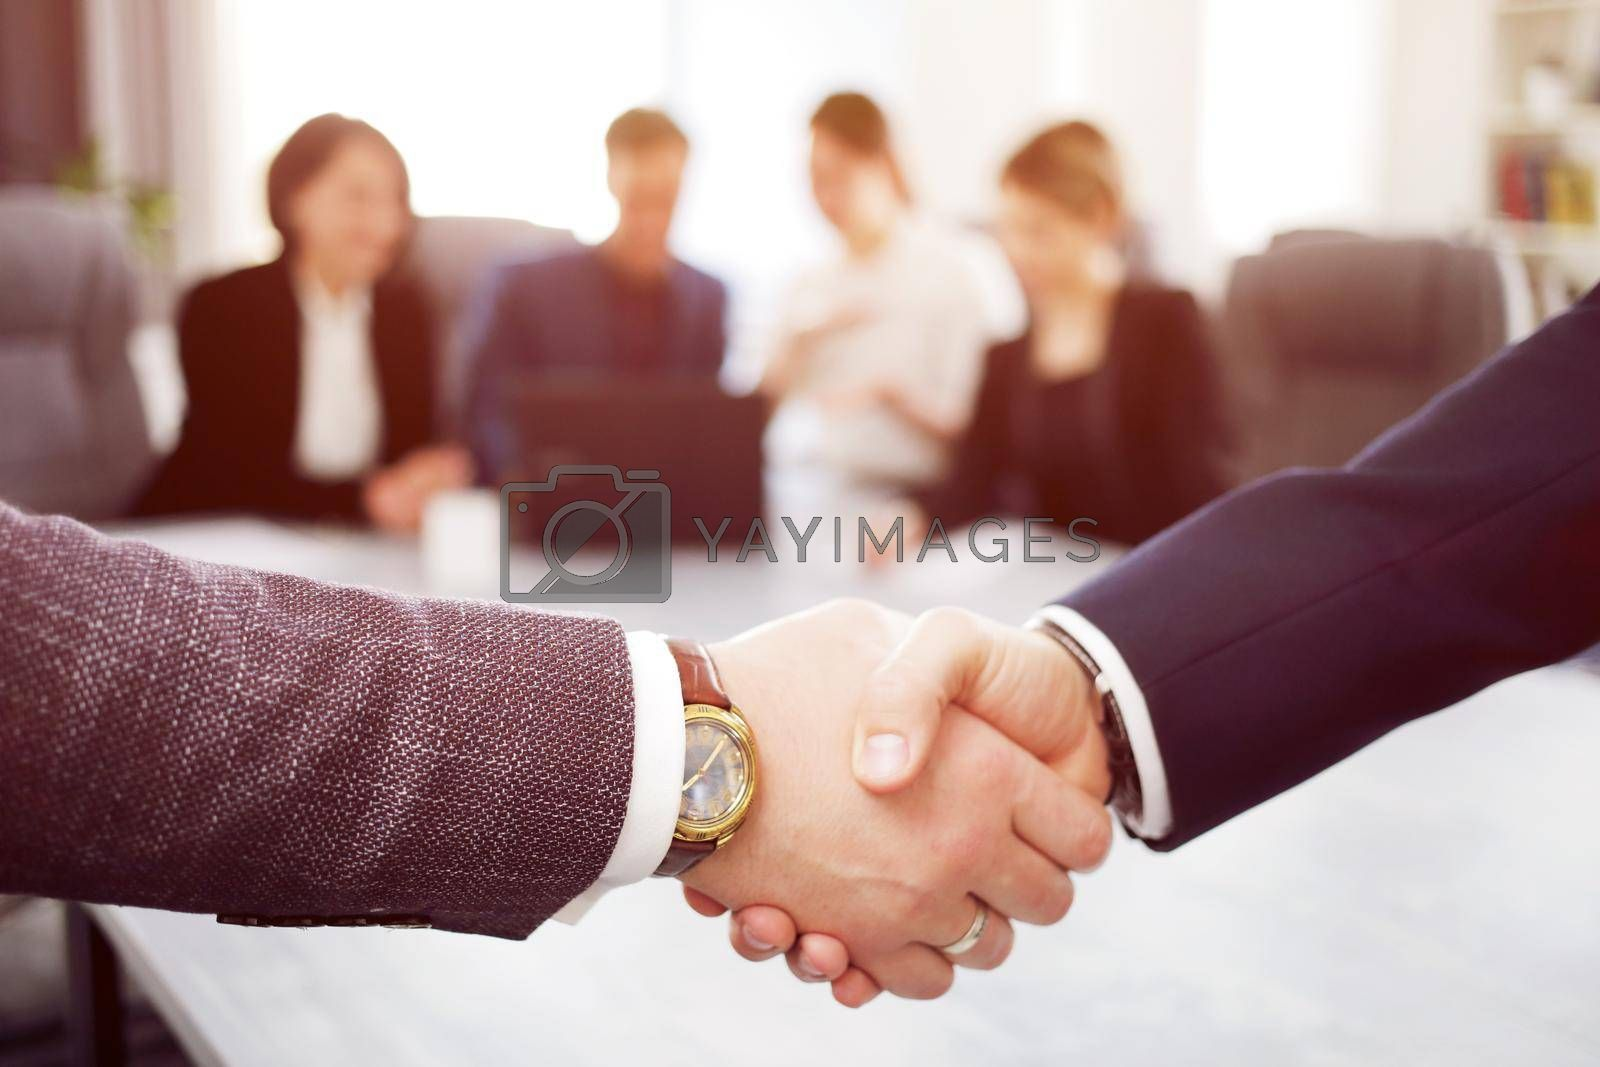 Royalty free image of Business people shaking hands finishing a meeting in the background of their work team by selinsmo